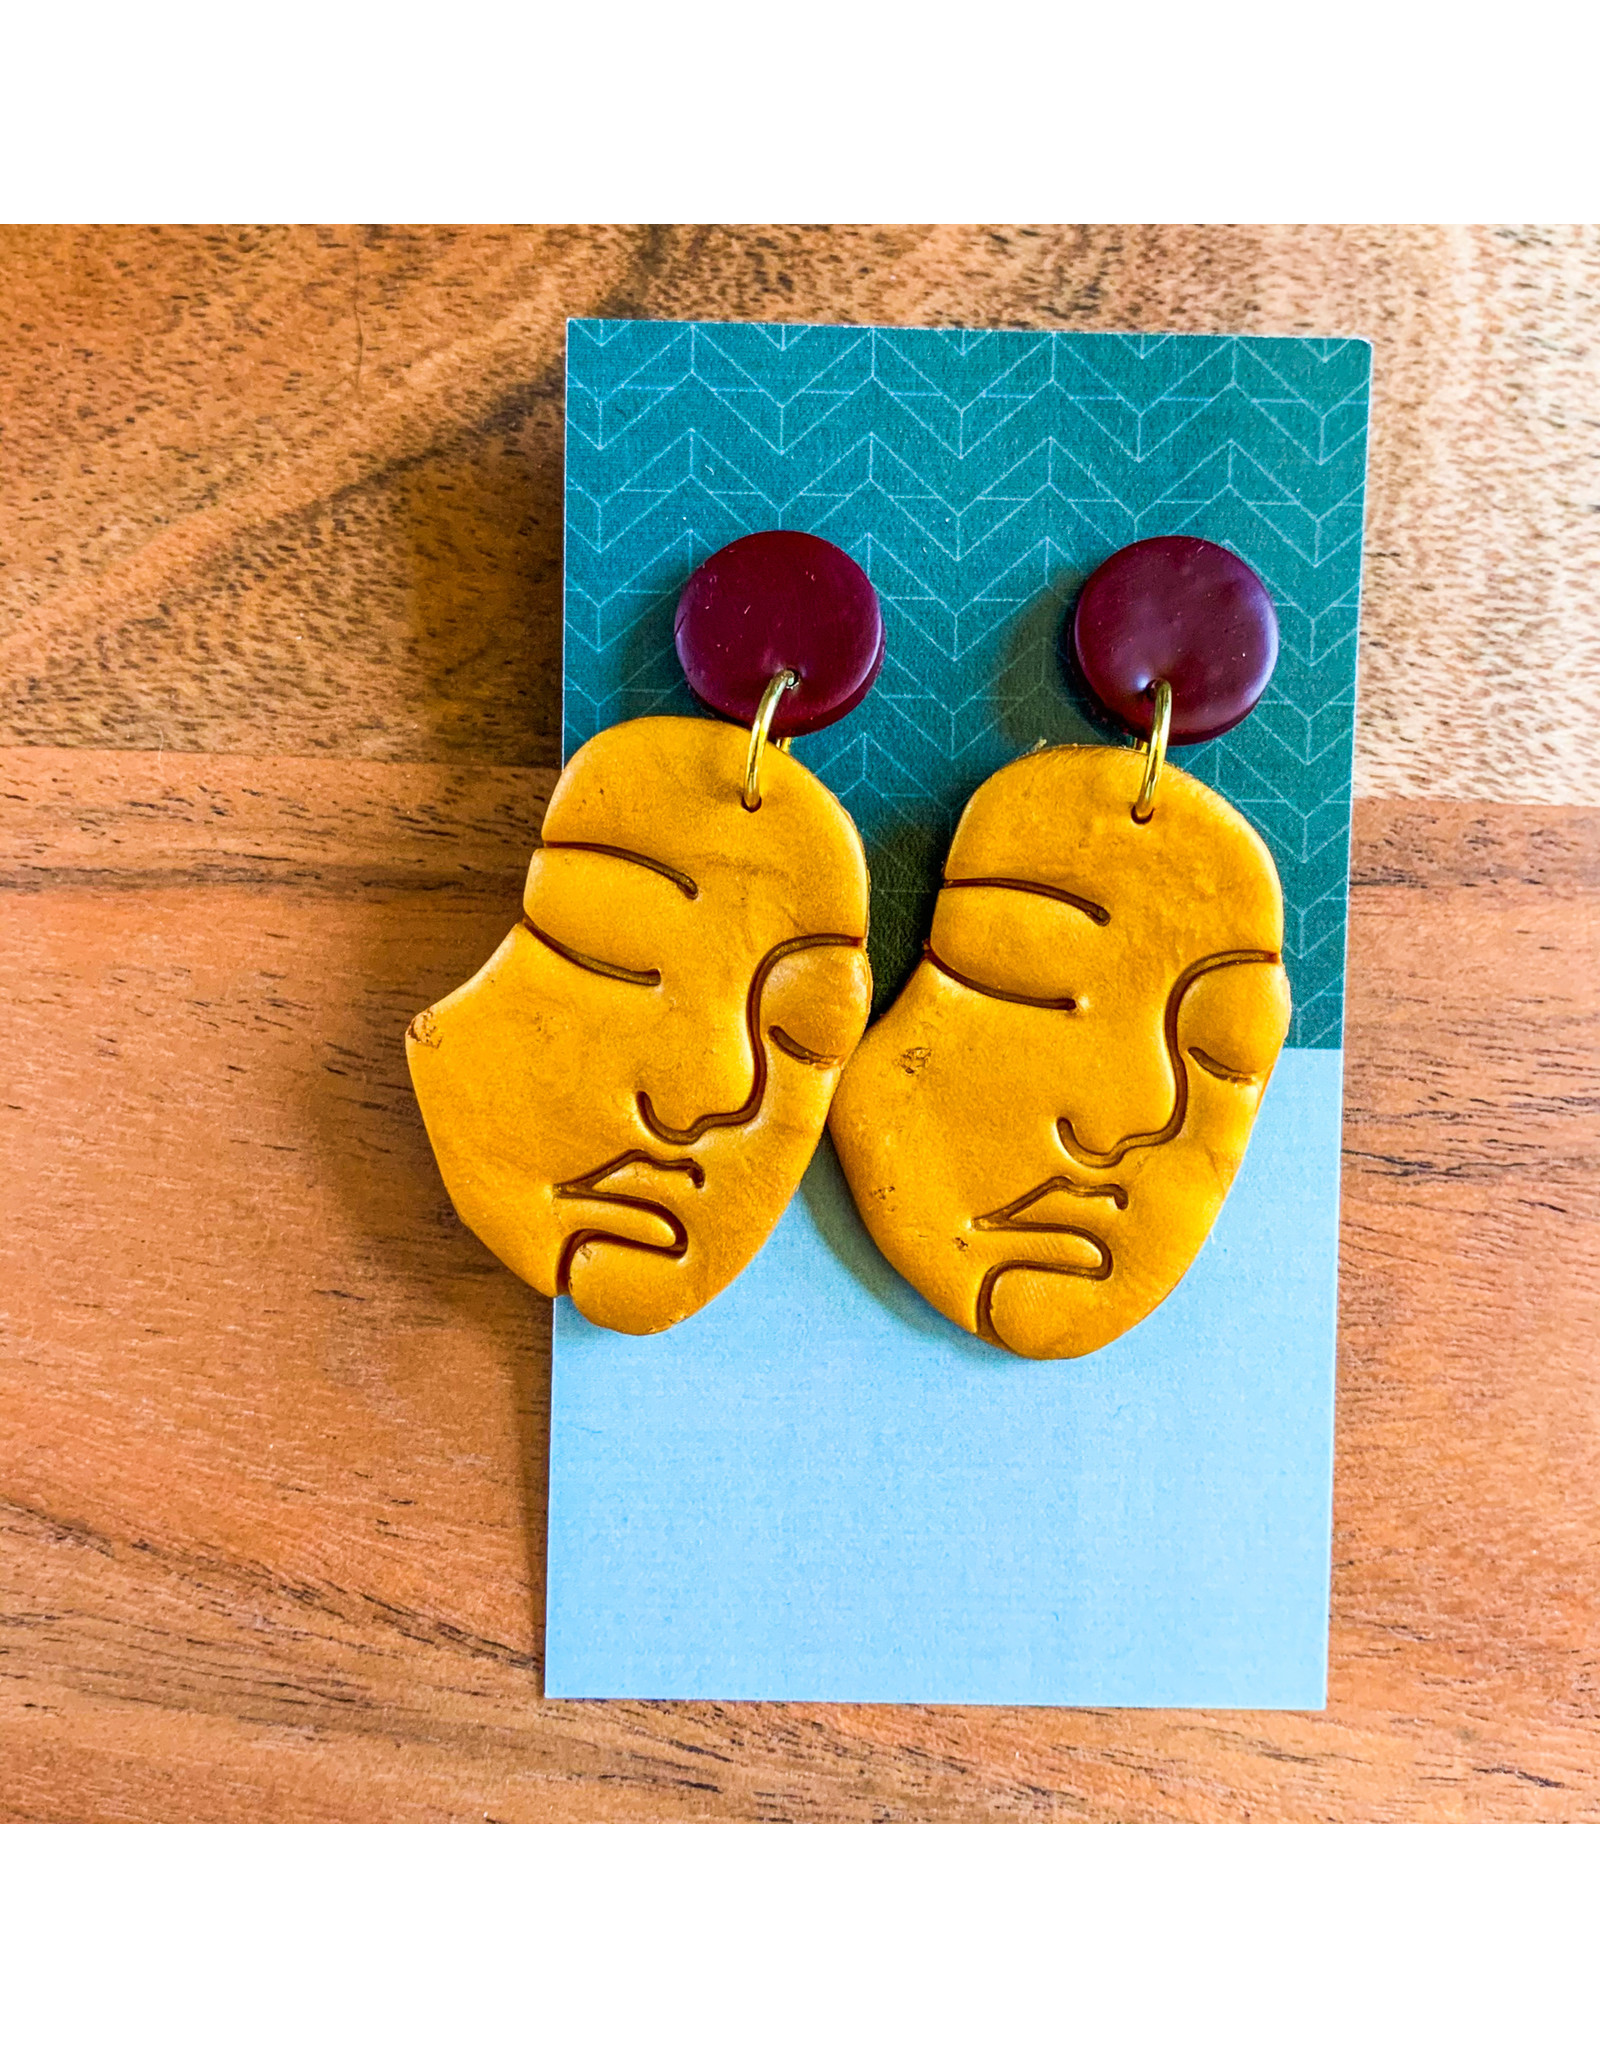 Maria Anholzer-Consignment Gold and Maroon Faces Consignment